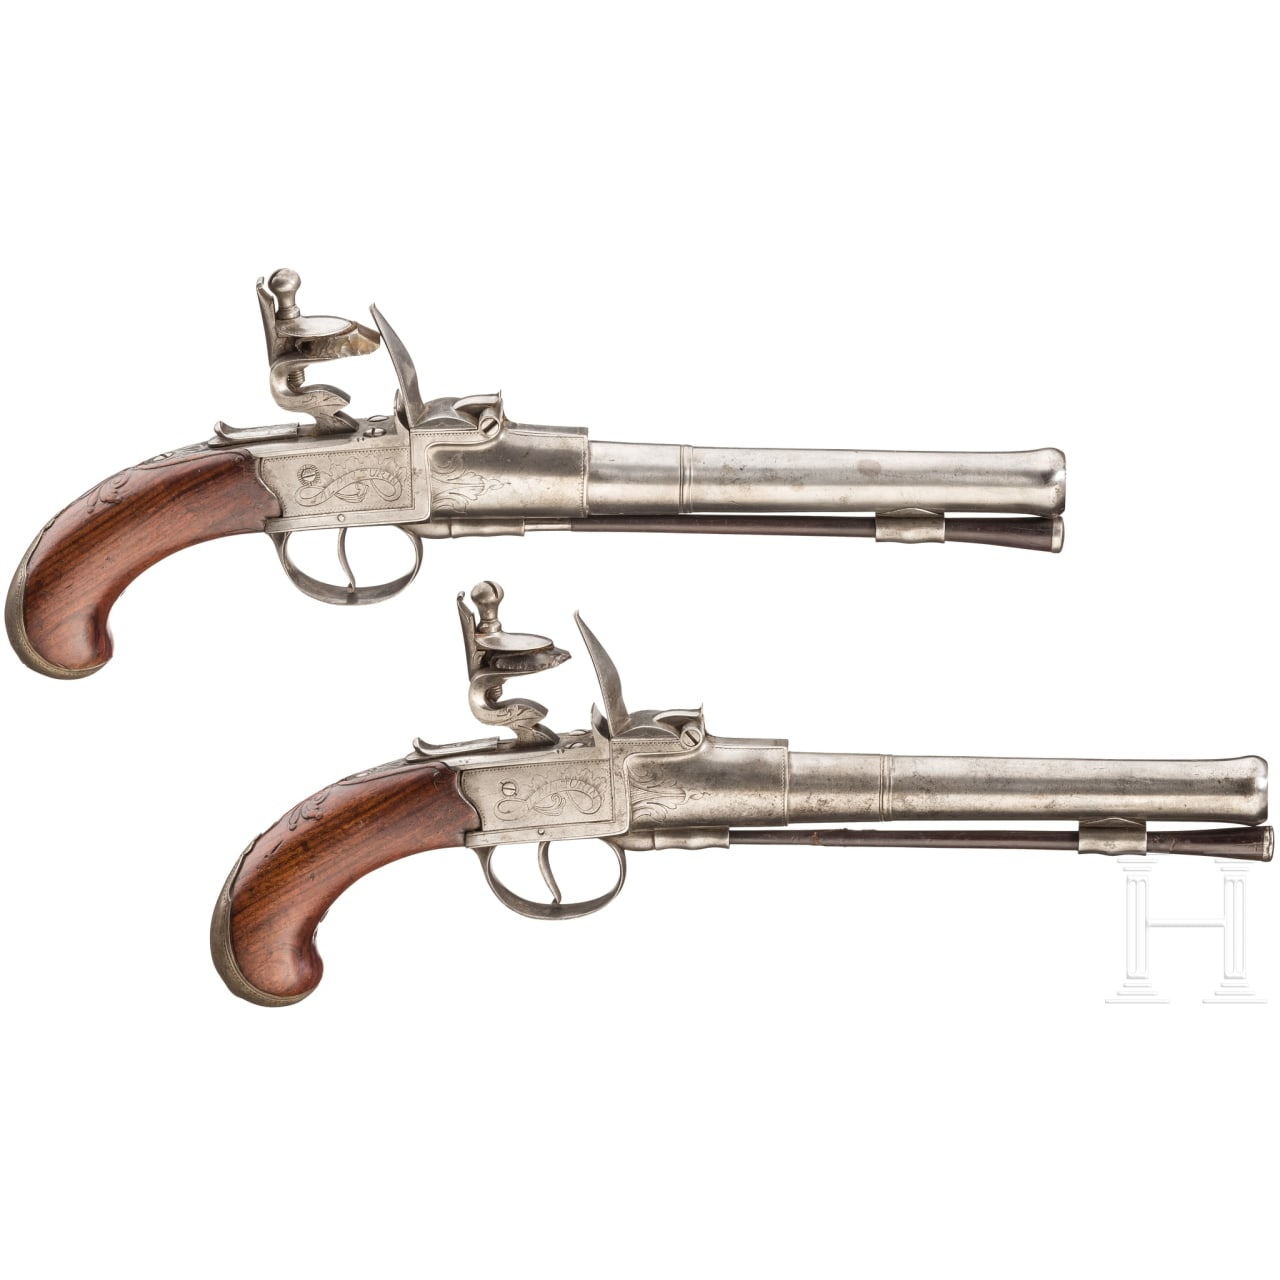 A pair of flintlock travel pistols, Turin, ca. 1780